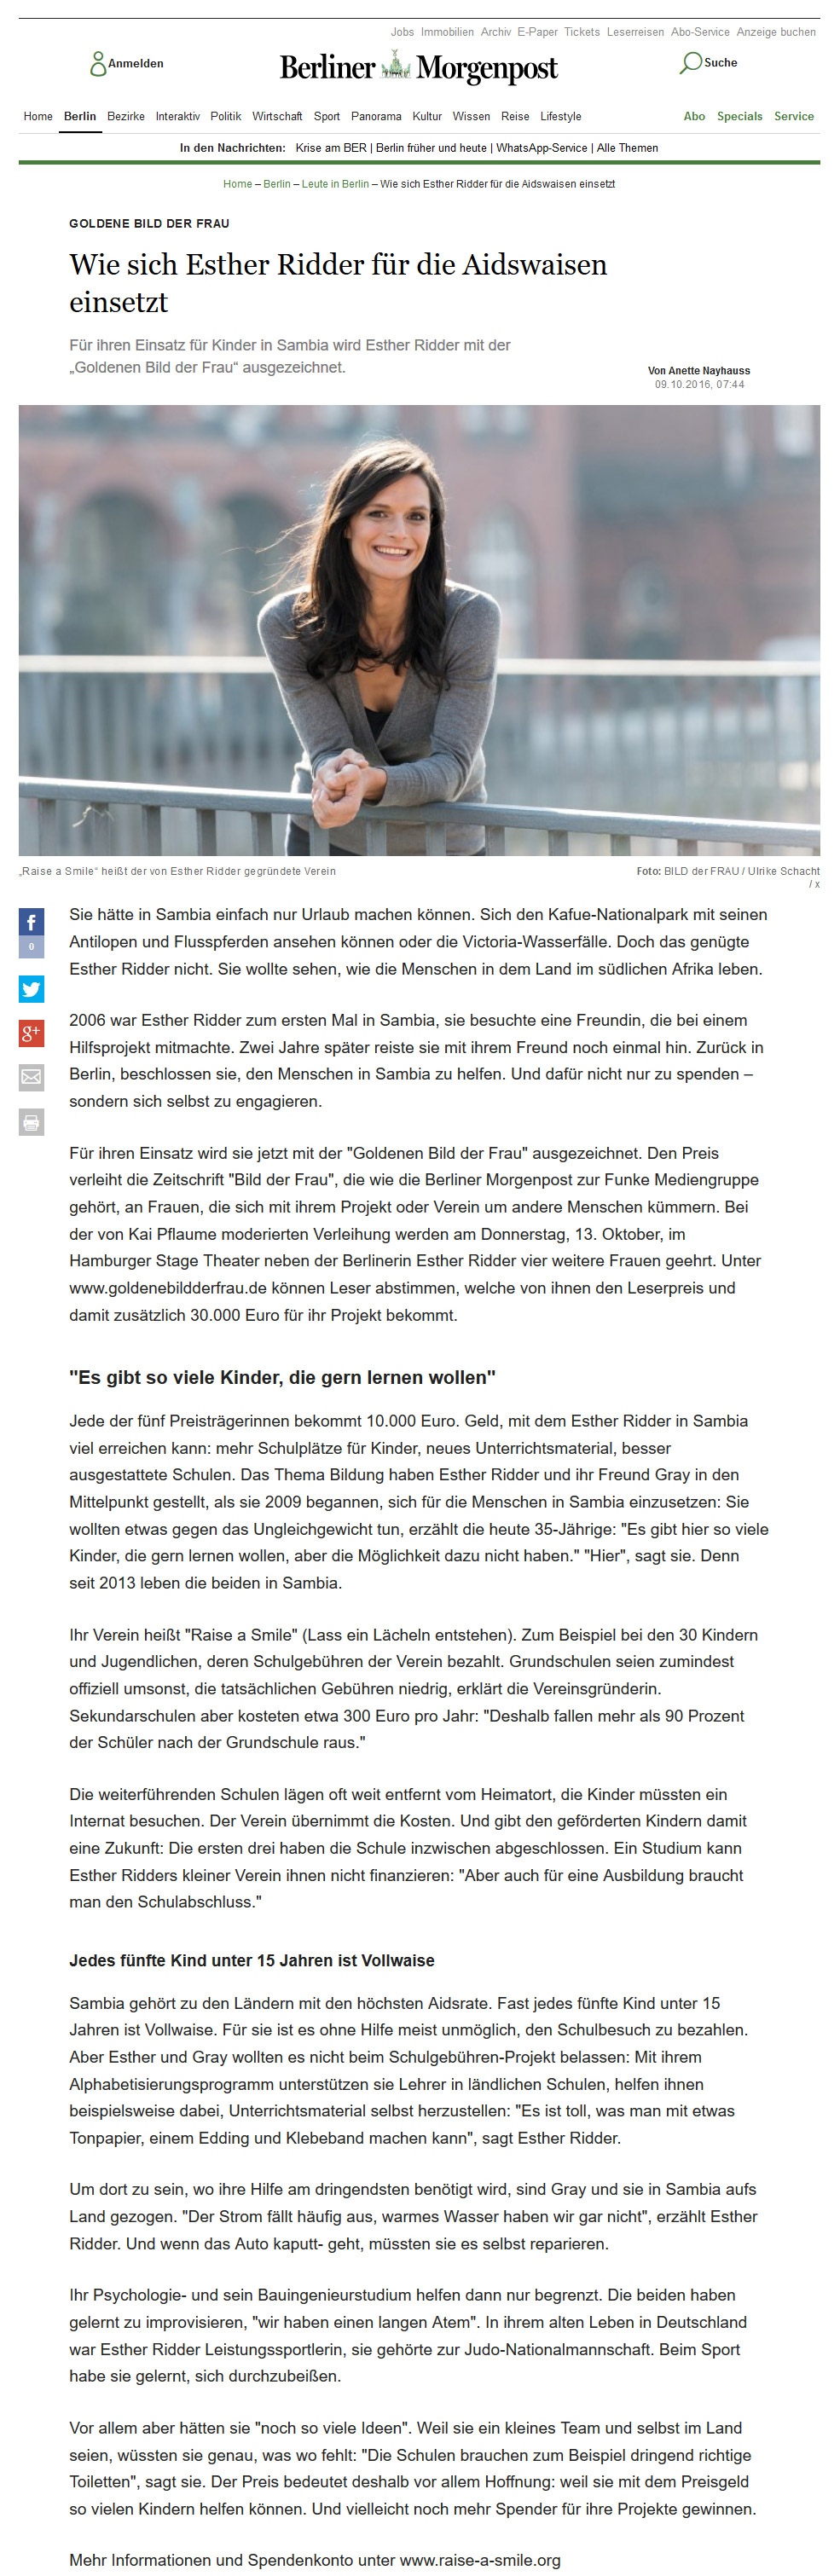 Raise a Smile Artikel in Berliner Morgenpost